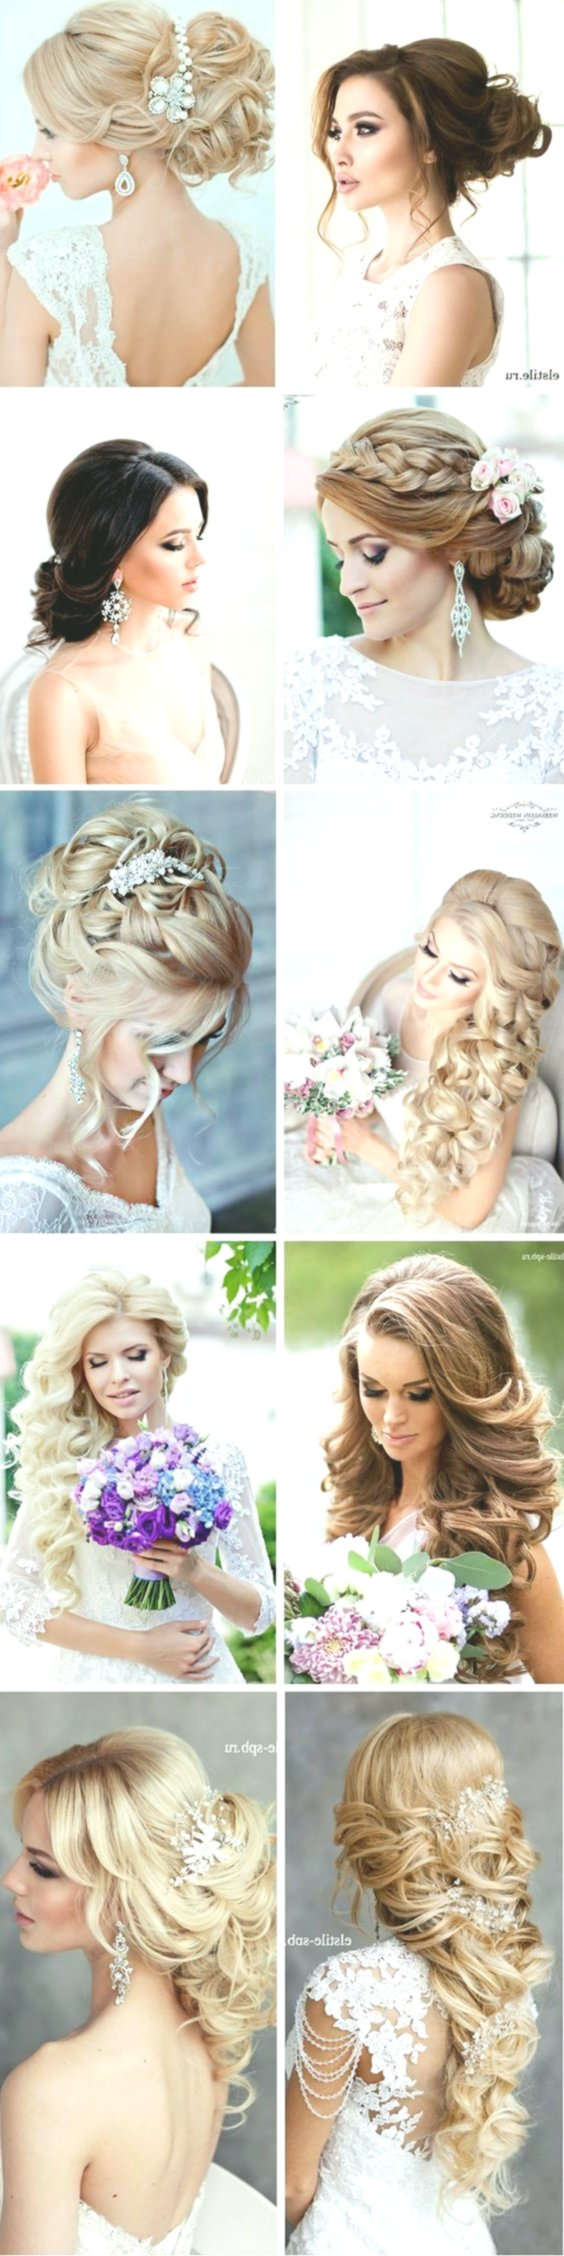 Best Hairdresser Hair Décor-Beautiful Hairdresser Hair Photo